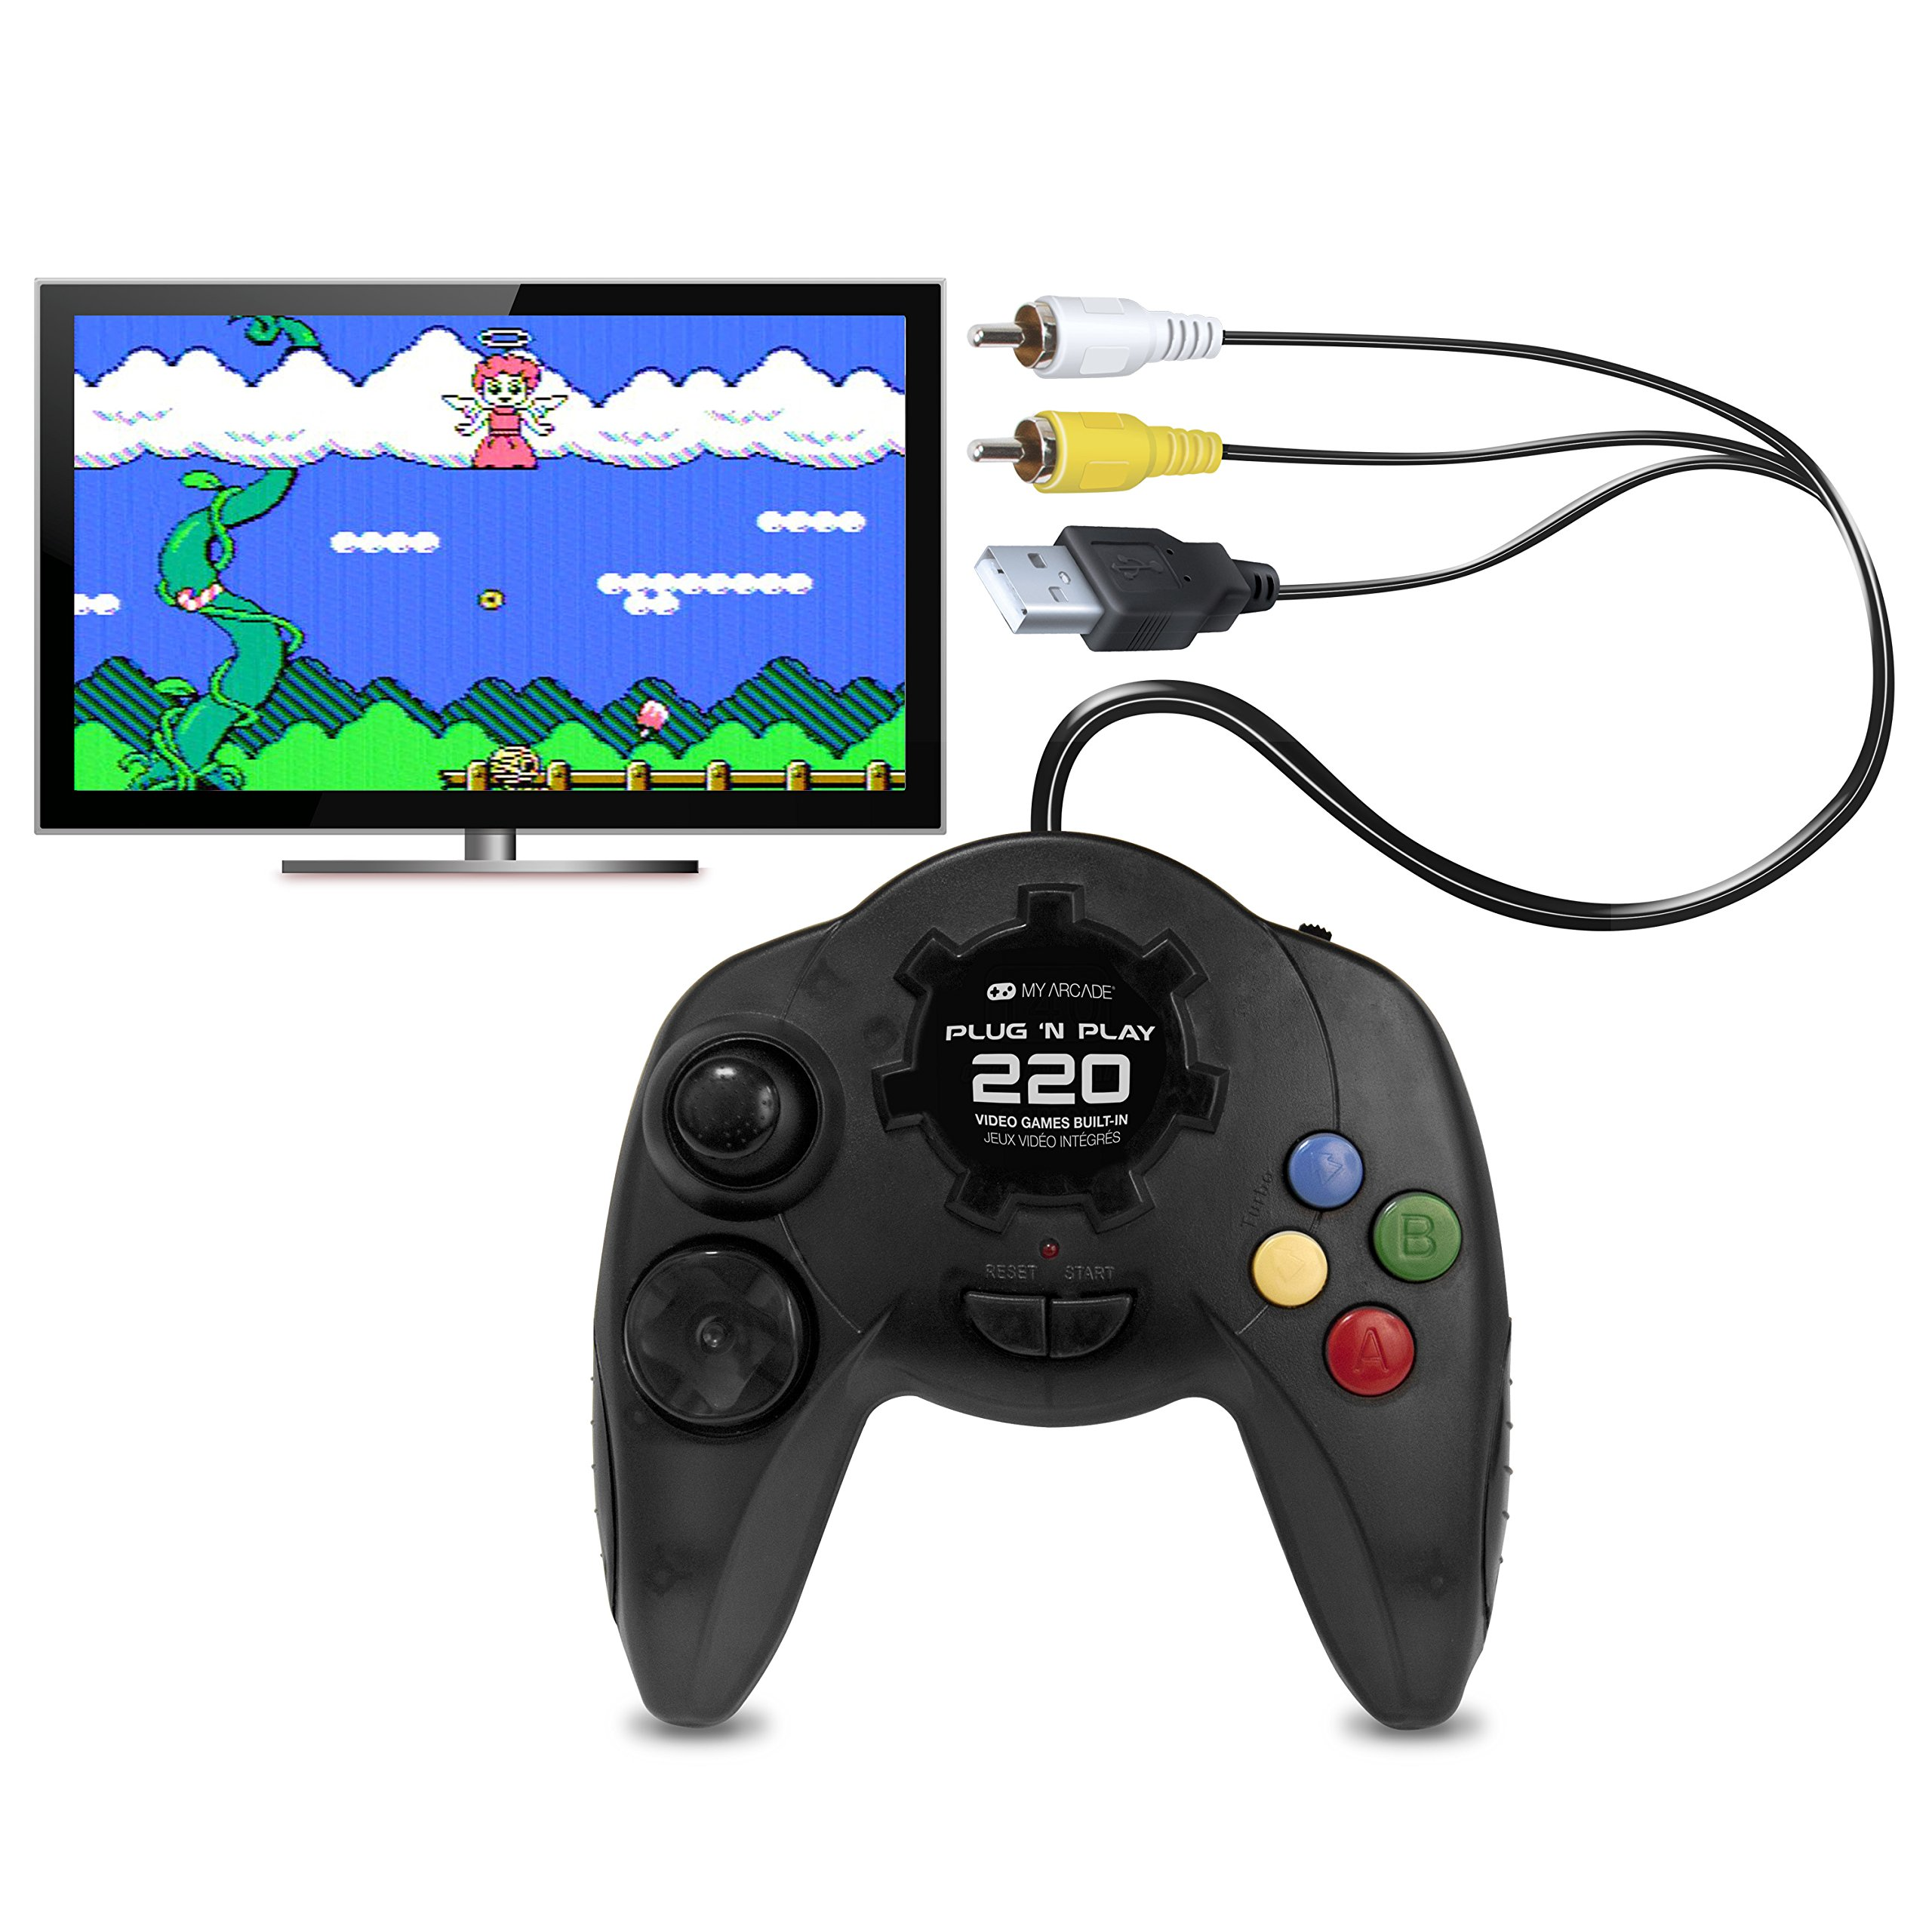 My Arcade - Plug N Play Controller with 220 Built-in Retro Style Games - Electronic Games by My Arcade (Image #2)